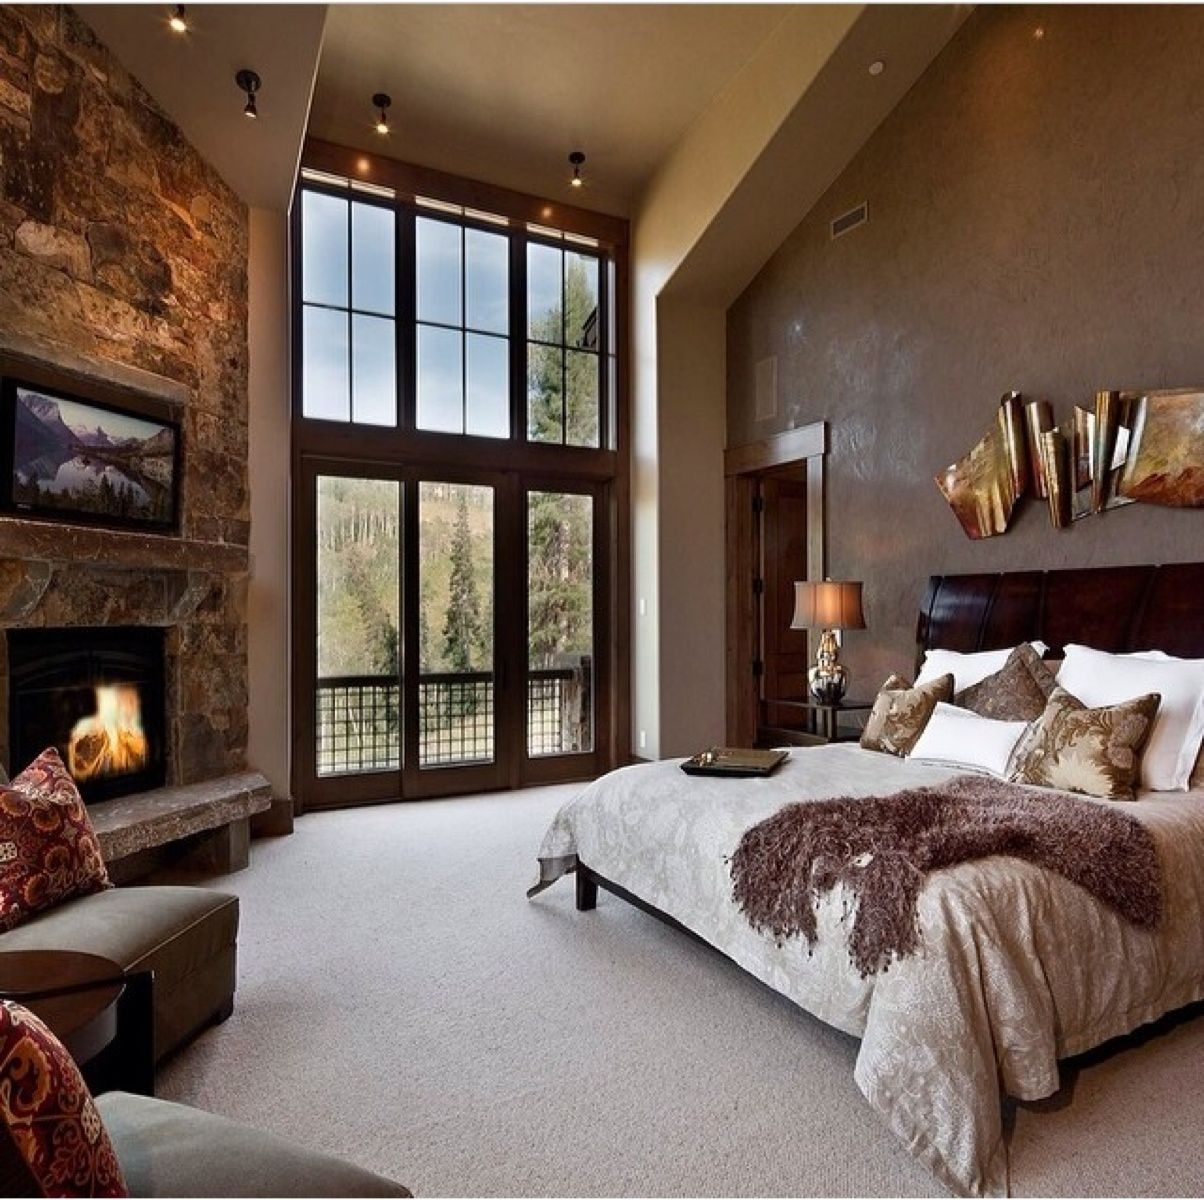 50 Master Bedroom Ideas That Go Beyond The Basics Dream Master Bedroom Home Home Bedroom